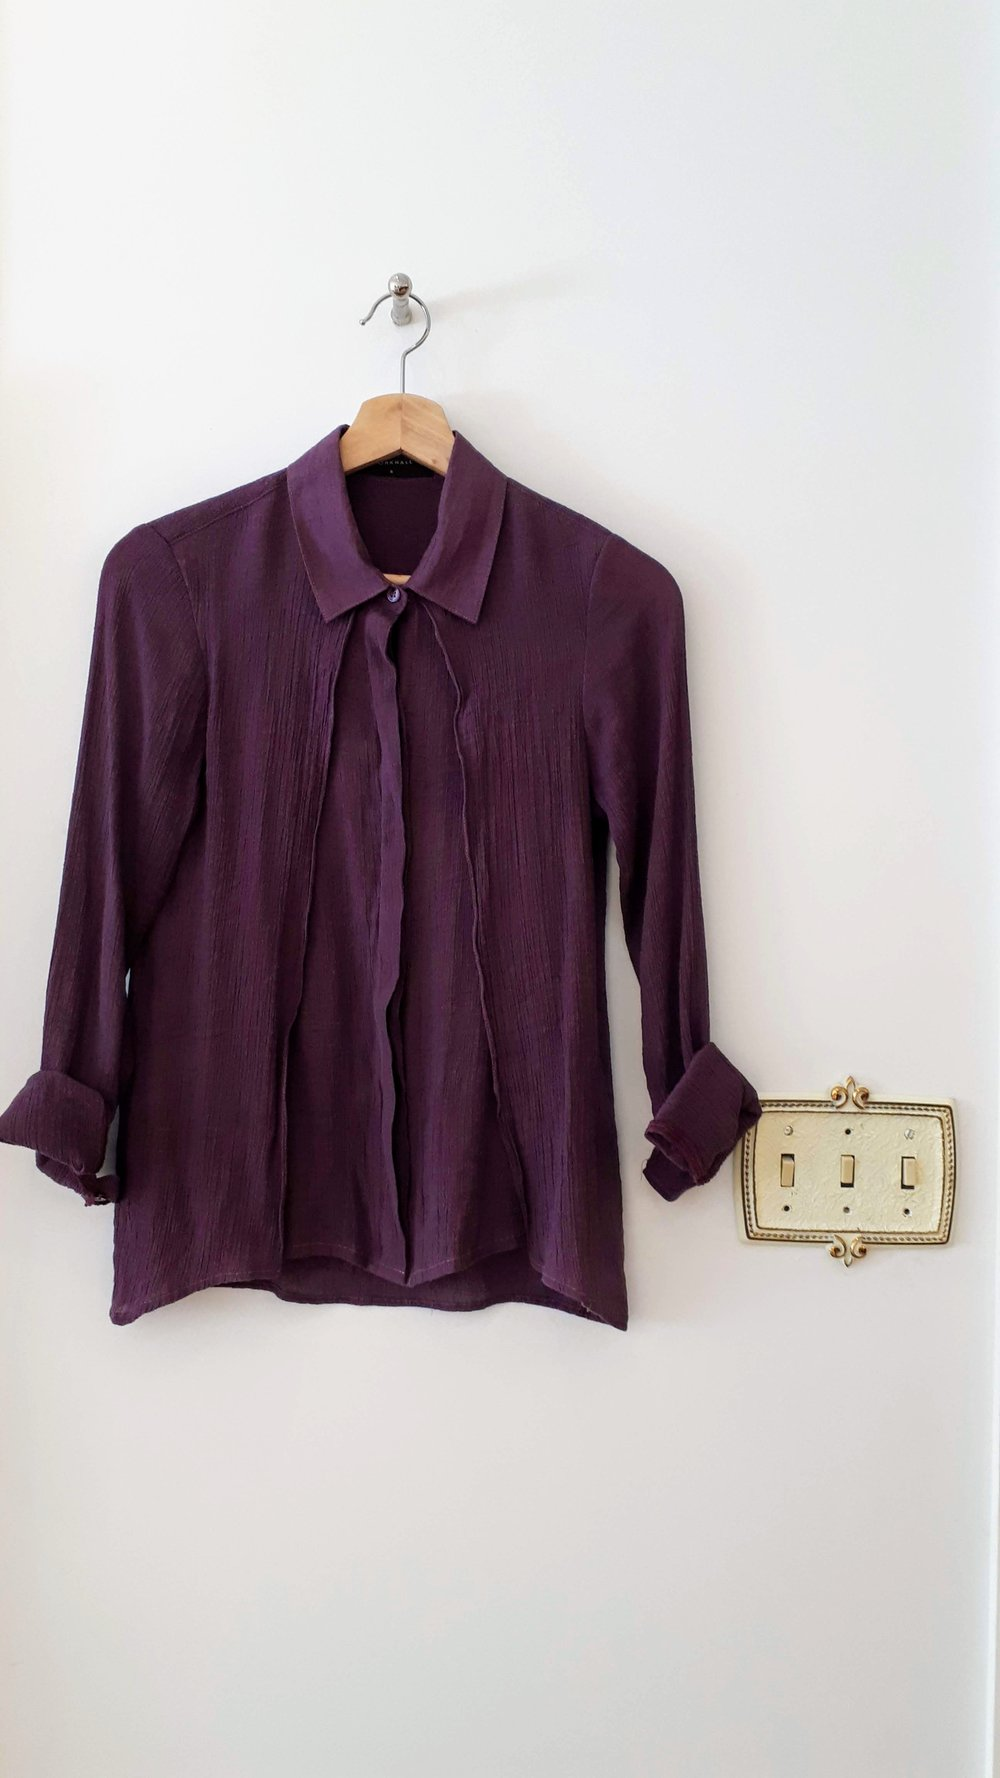 Workhall top; Size S, $30